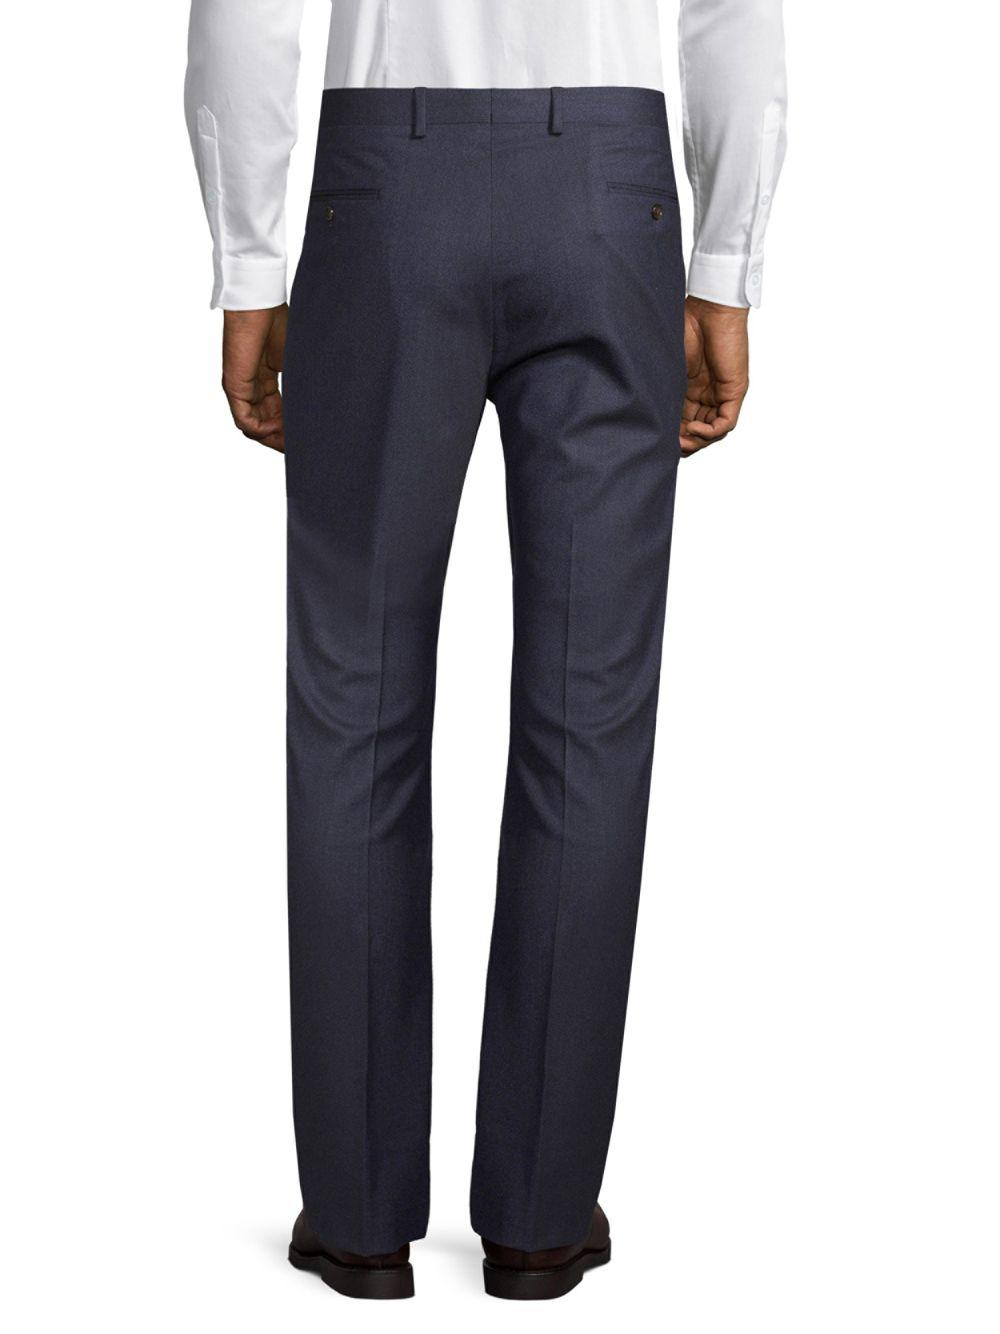 Todd Synder X Champion Stretch Wool Trousers in Dark Blue (Blue) for Men